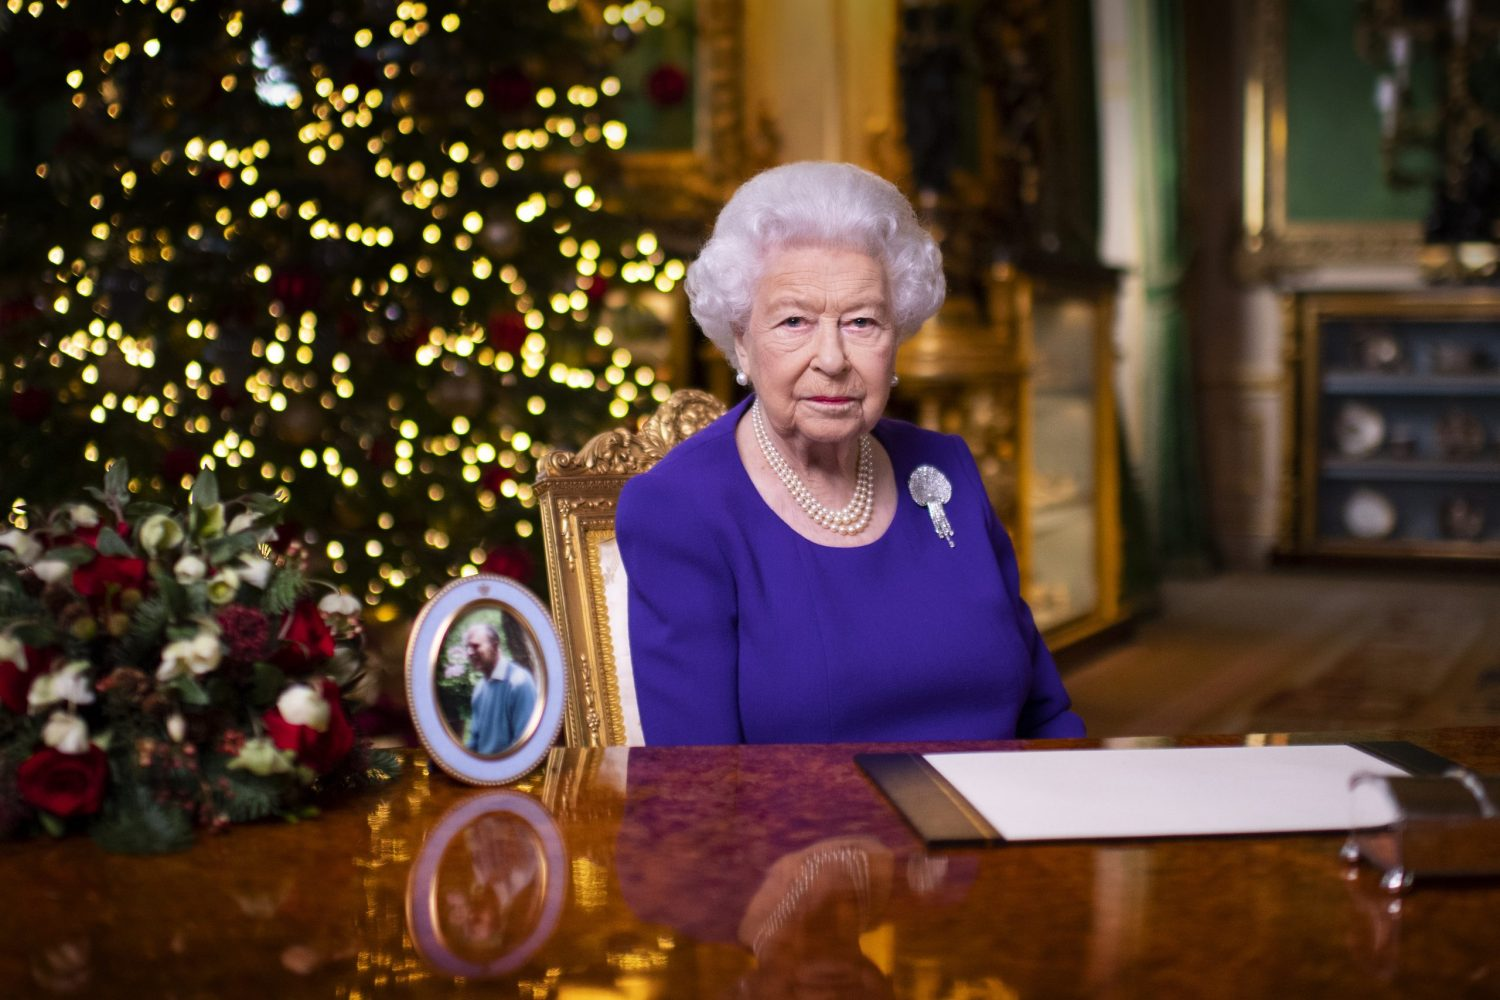 The Queen records her annual Christmas broadcast in Windsor Castle (PA Wire/Victoria Jones)